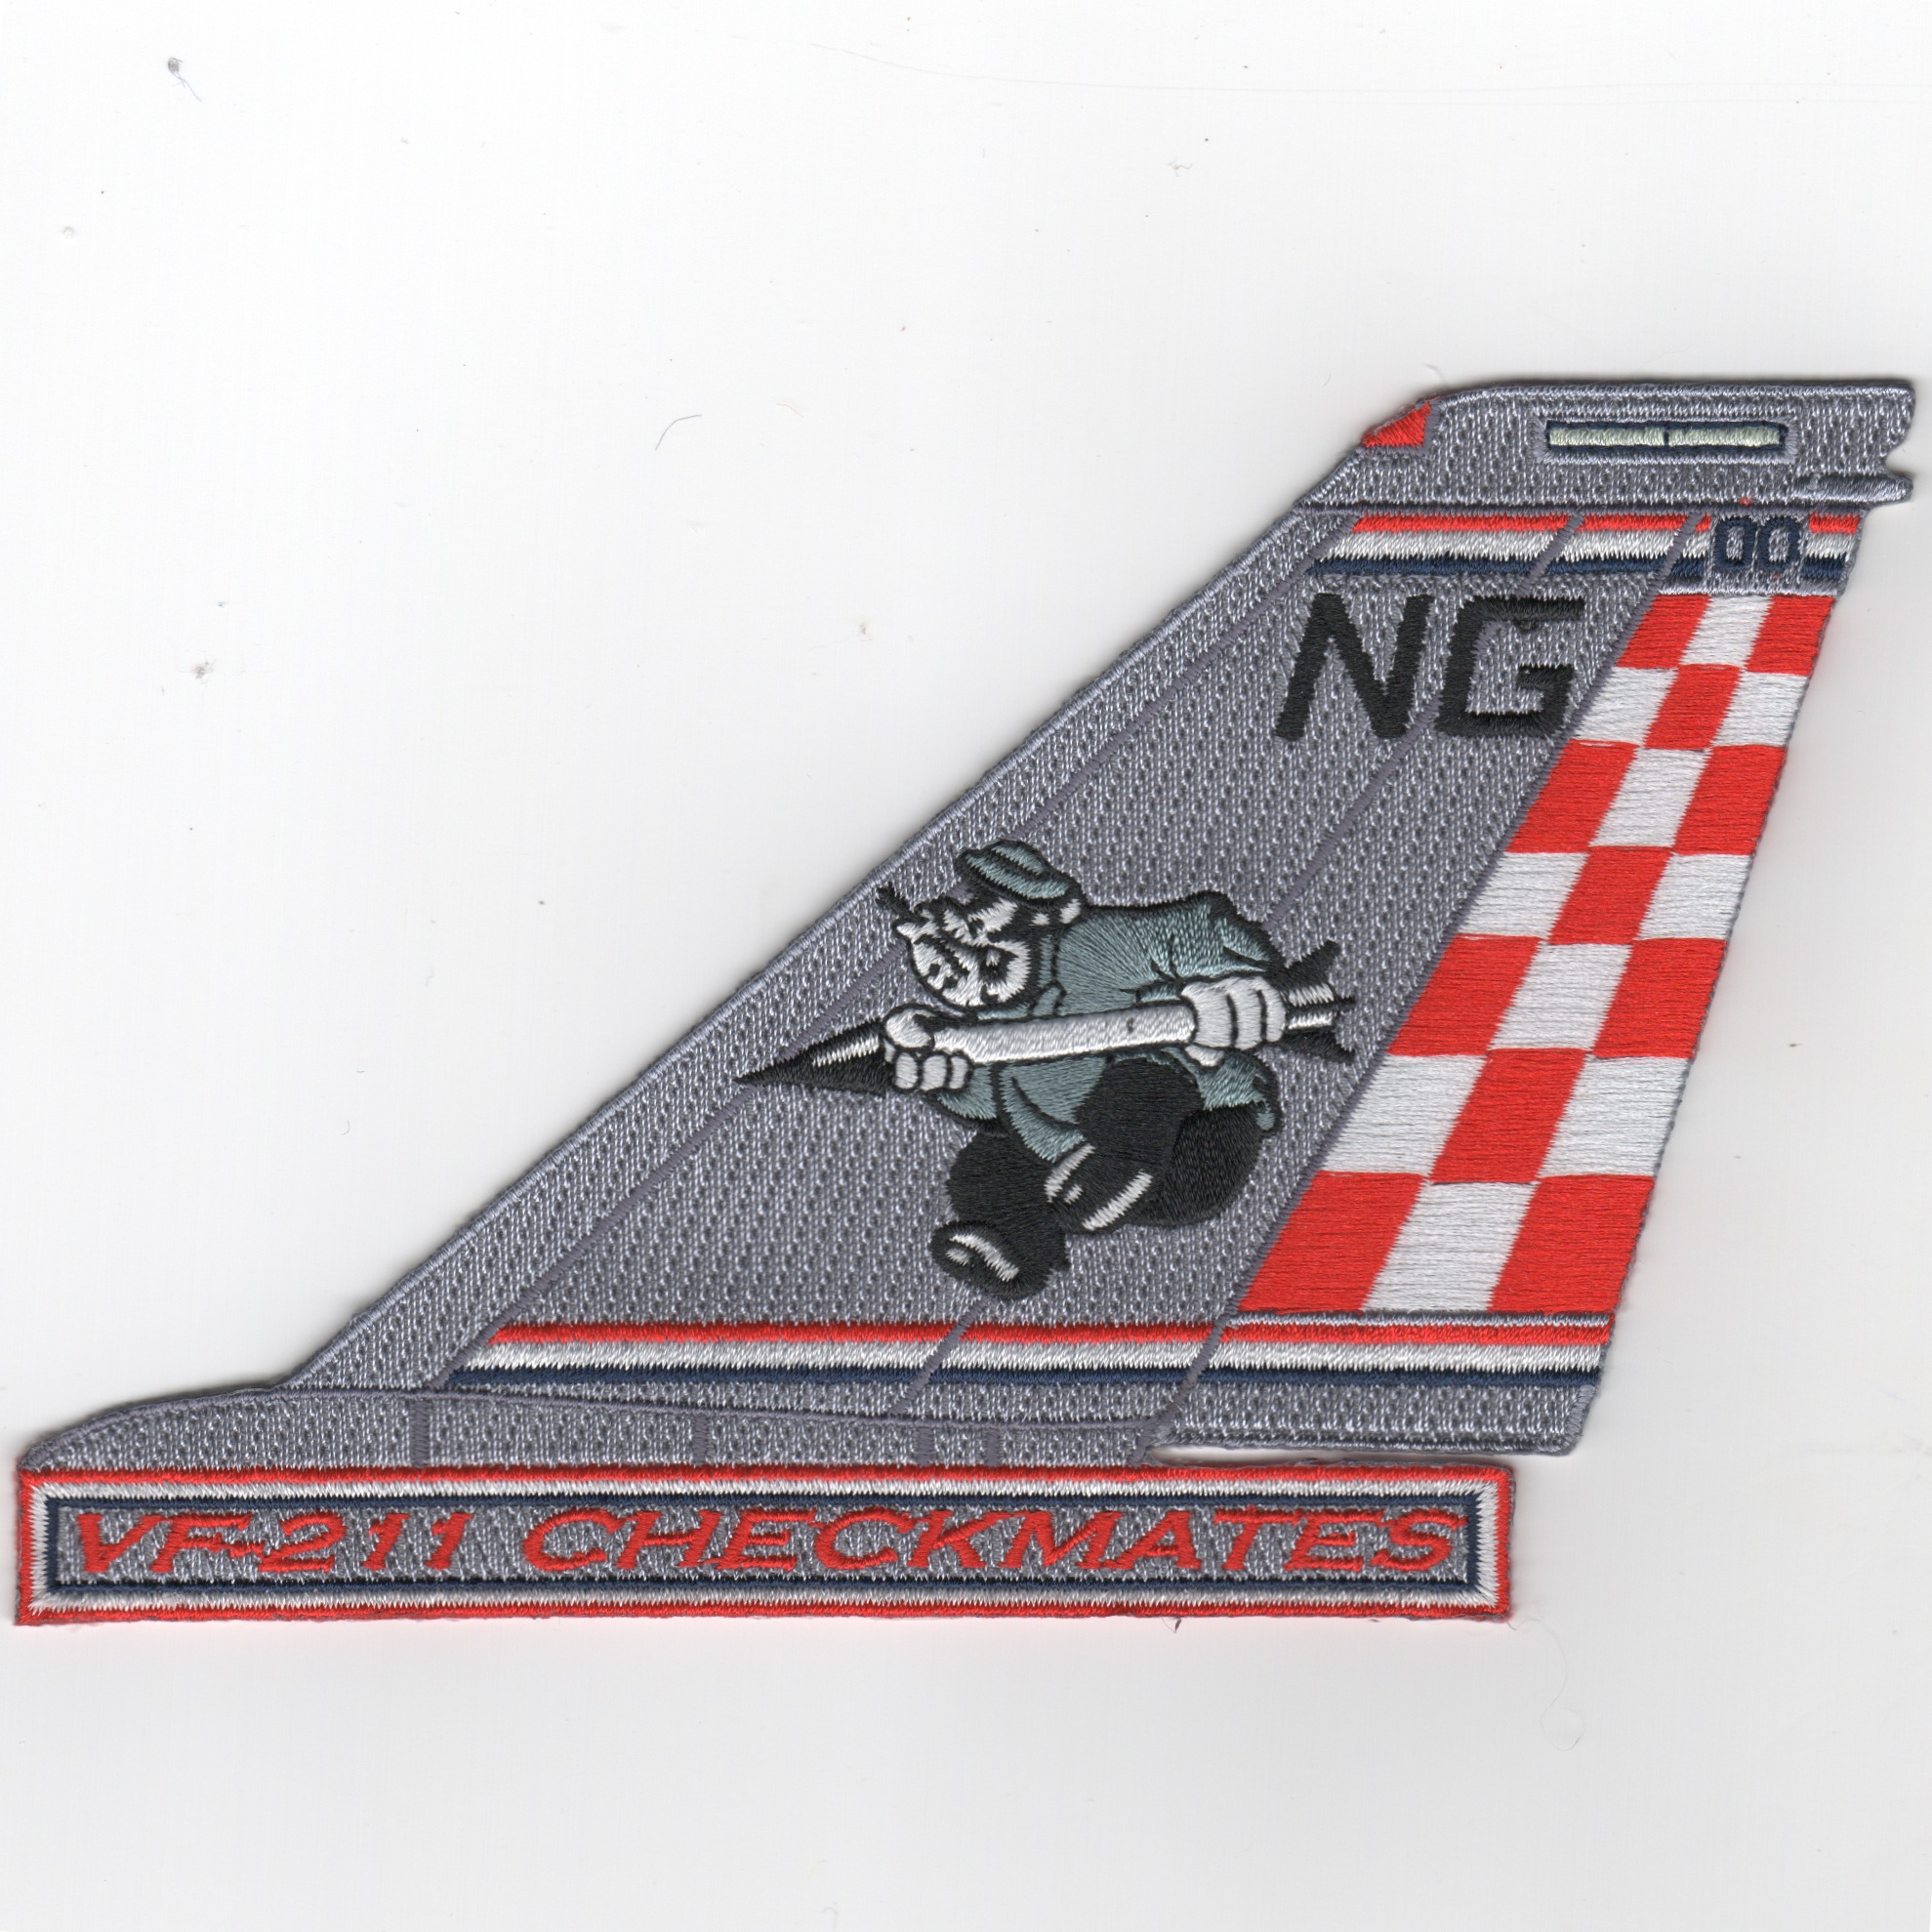 VF-211 F-14 Tailfin (Text/BRUTUS)